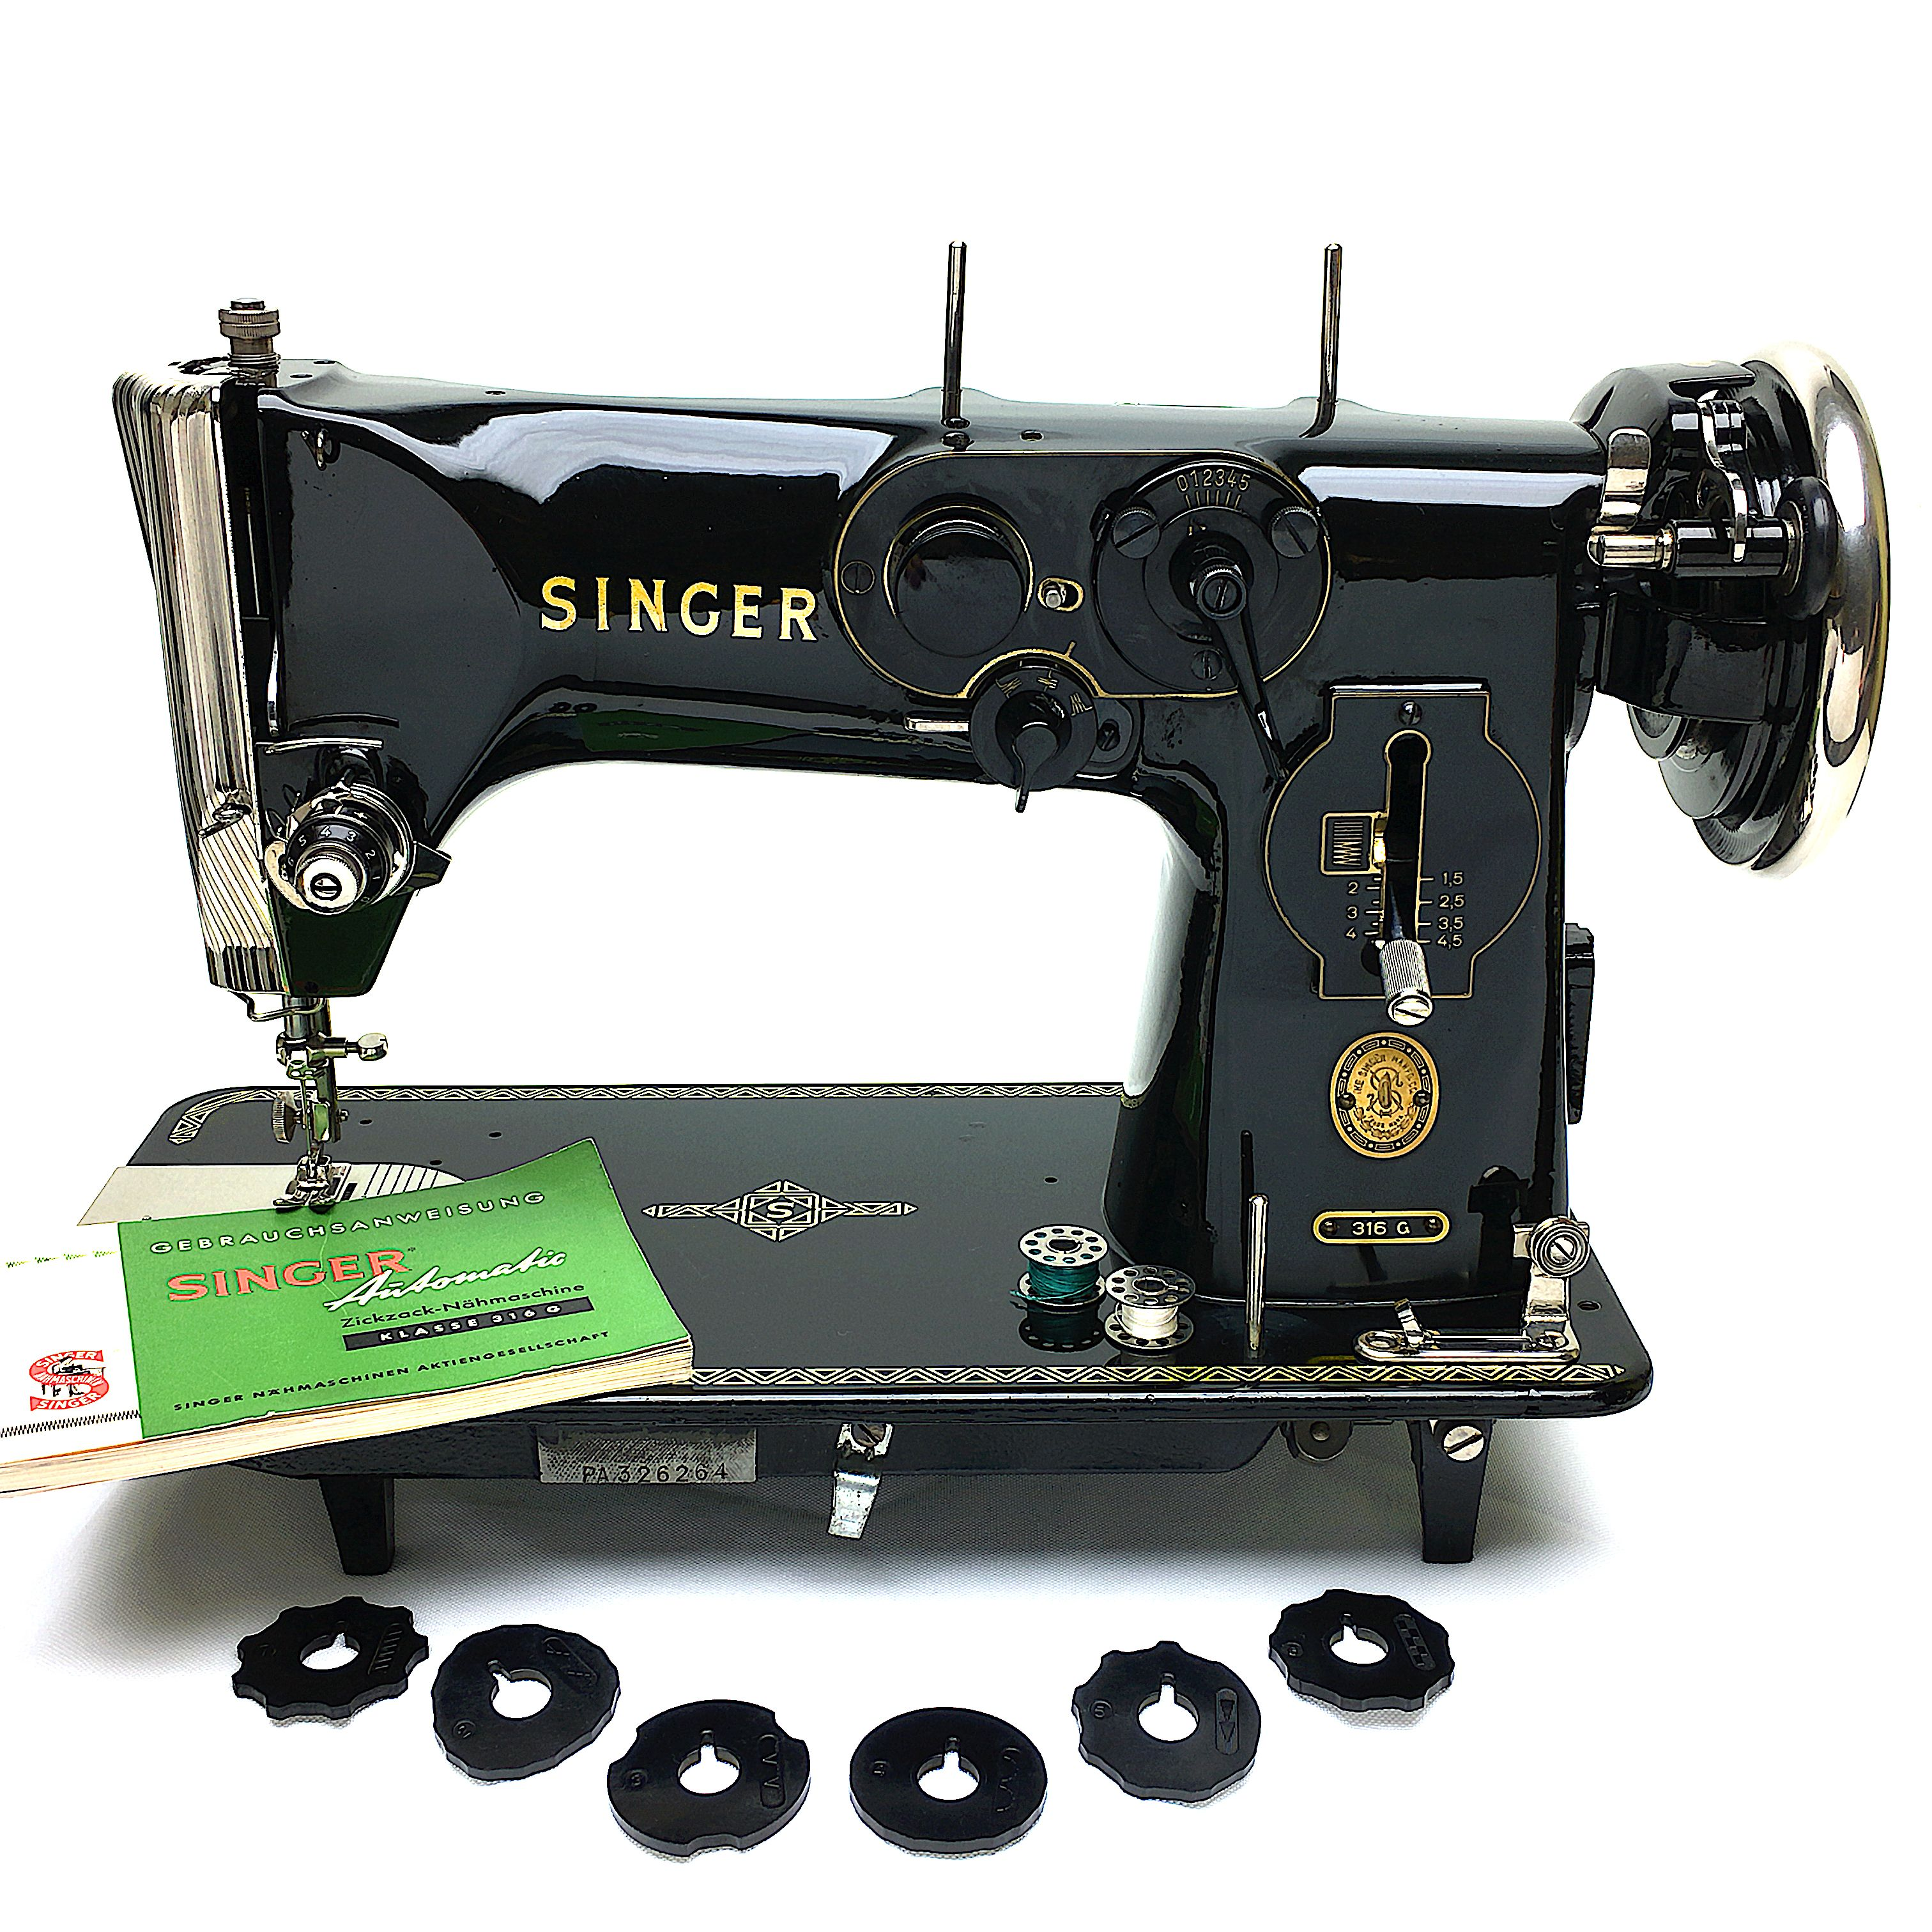 SINGER 316G Zig Zag Sewing Machine. Made in West Germany